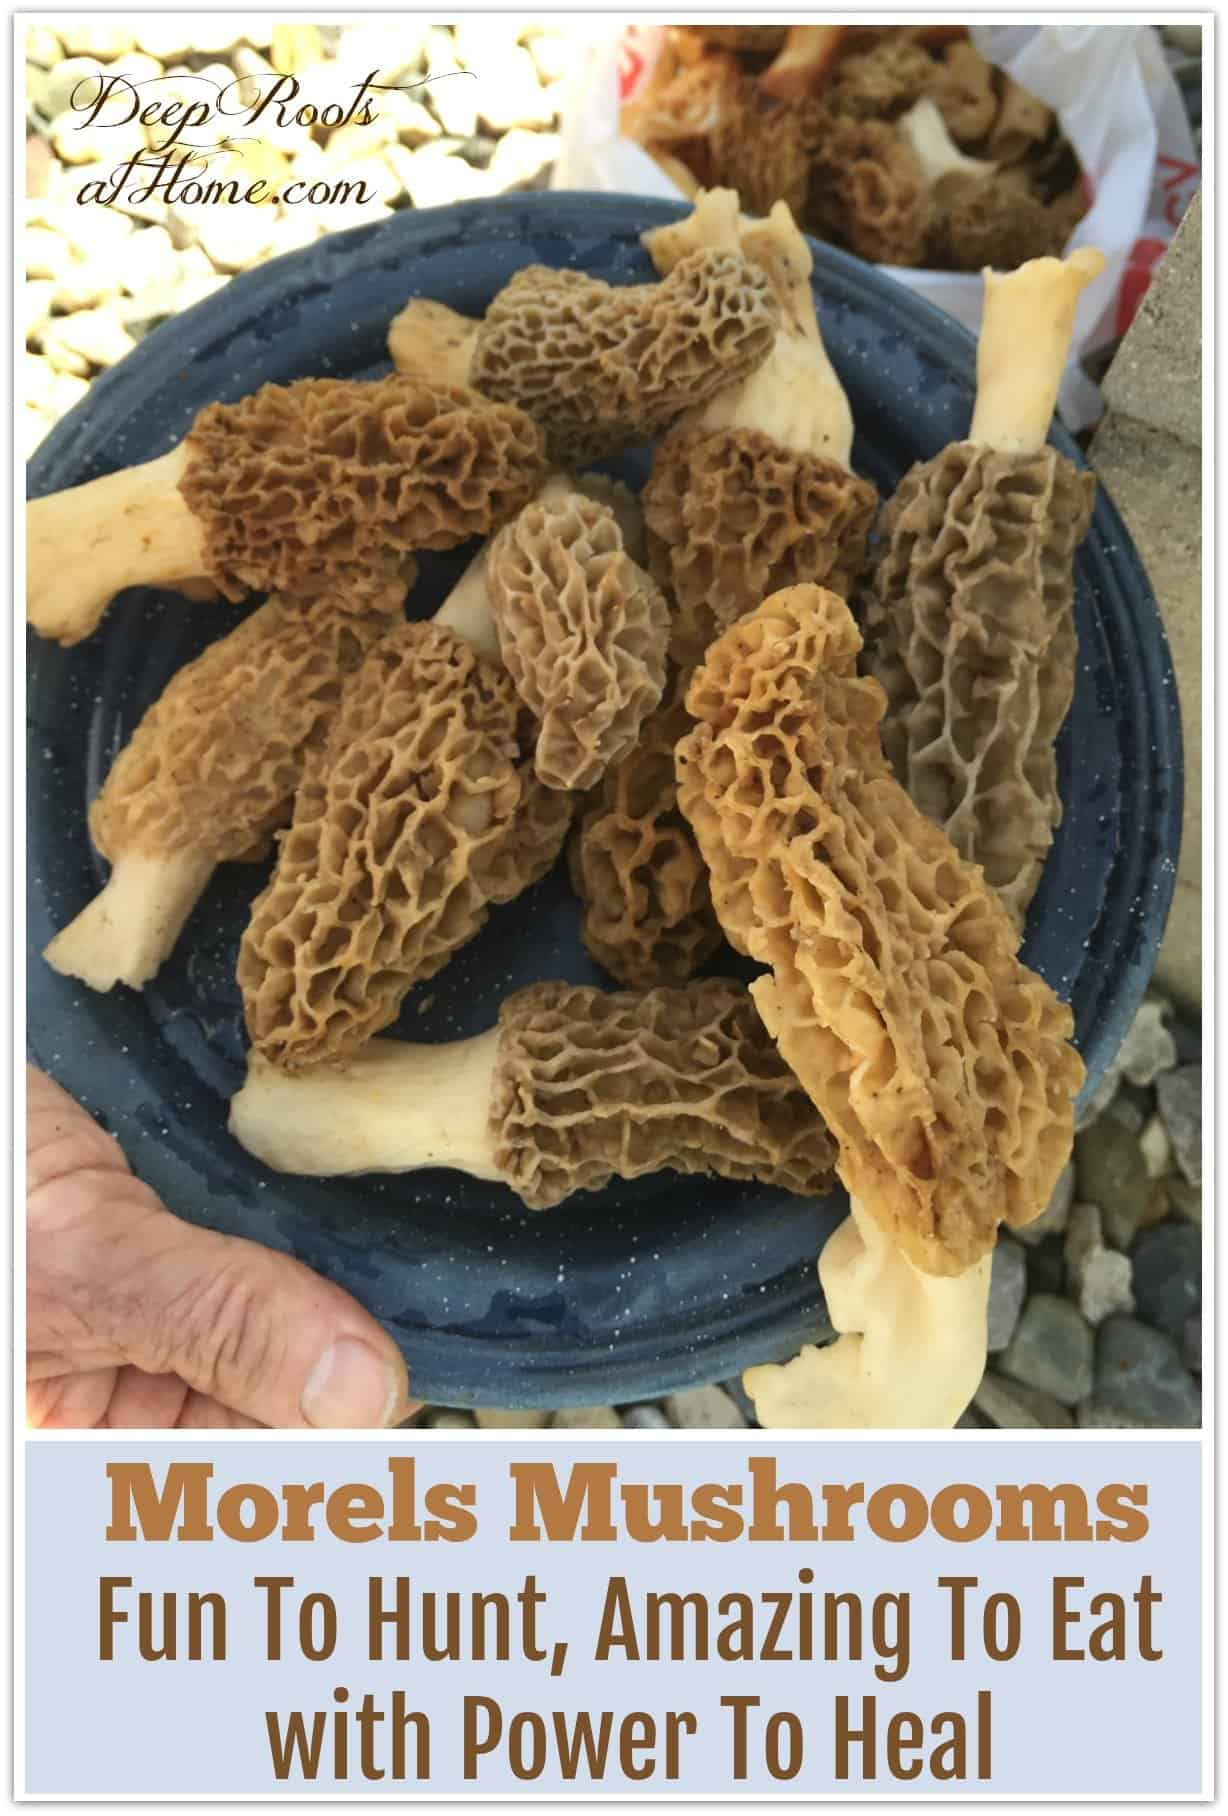 a plate of morchella mushrooms